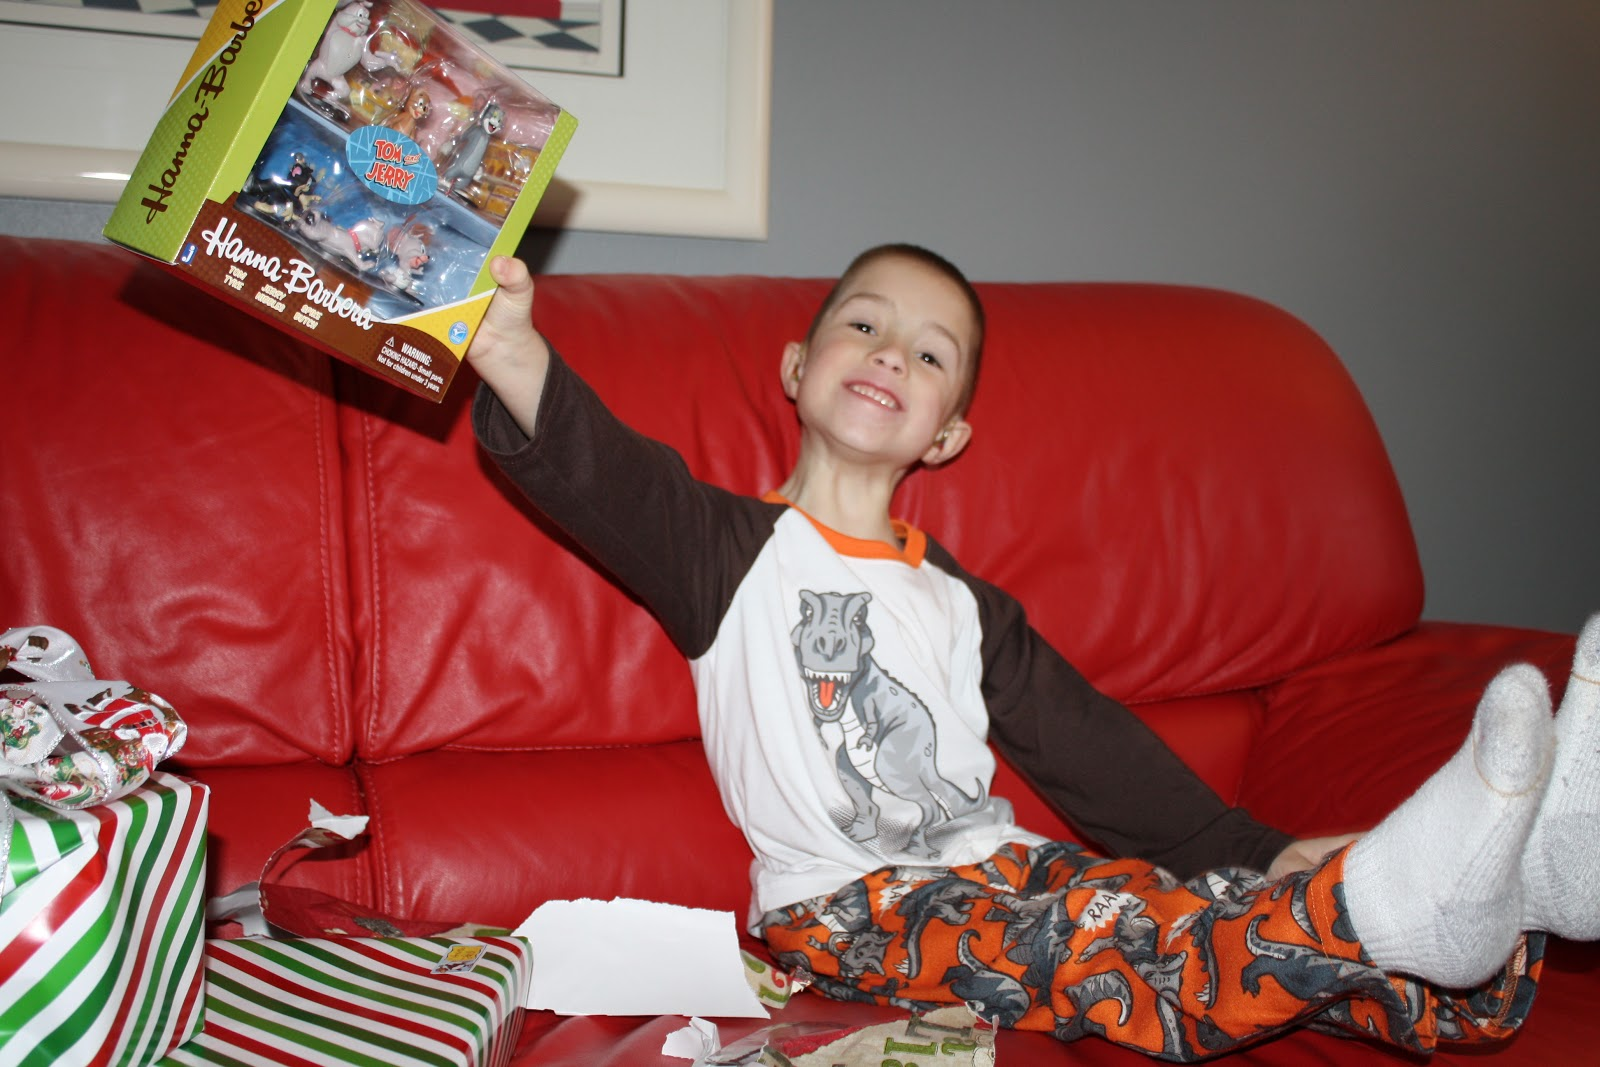 A Little Monkey Business Christmas Eve Cuddle Me Pajamas Red The Angry Birds Movie When Kids Woke Up Morning We Opened Gifts From Ga And Papa Made Him Happy With This Space Game Hed Been